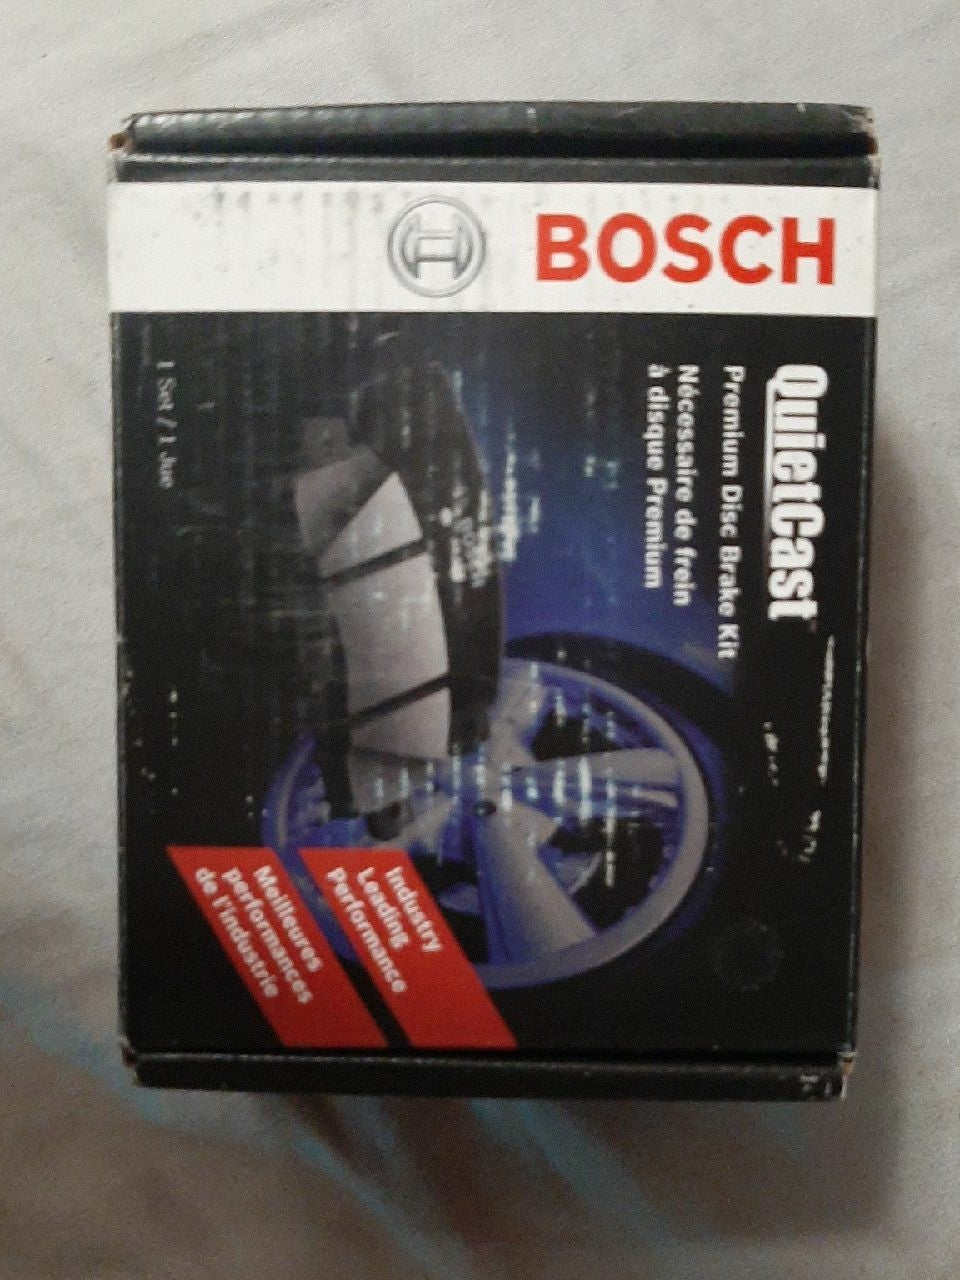 Bosch quiet cast ceramic disc brake set